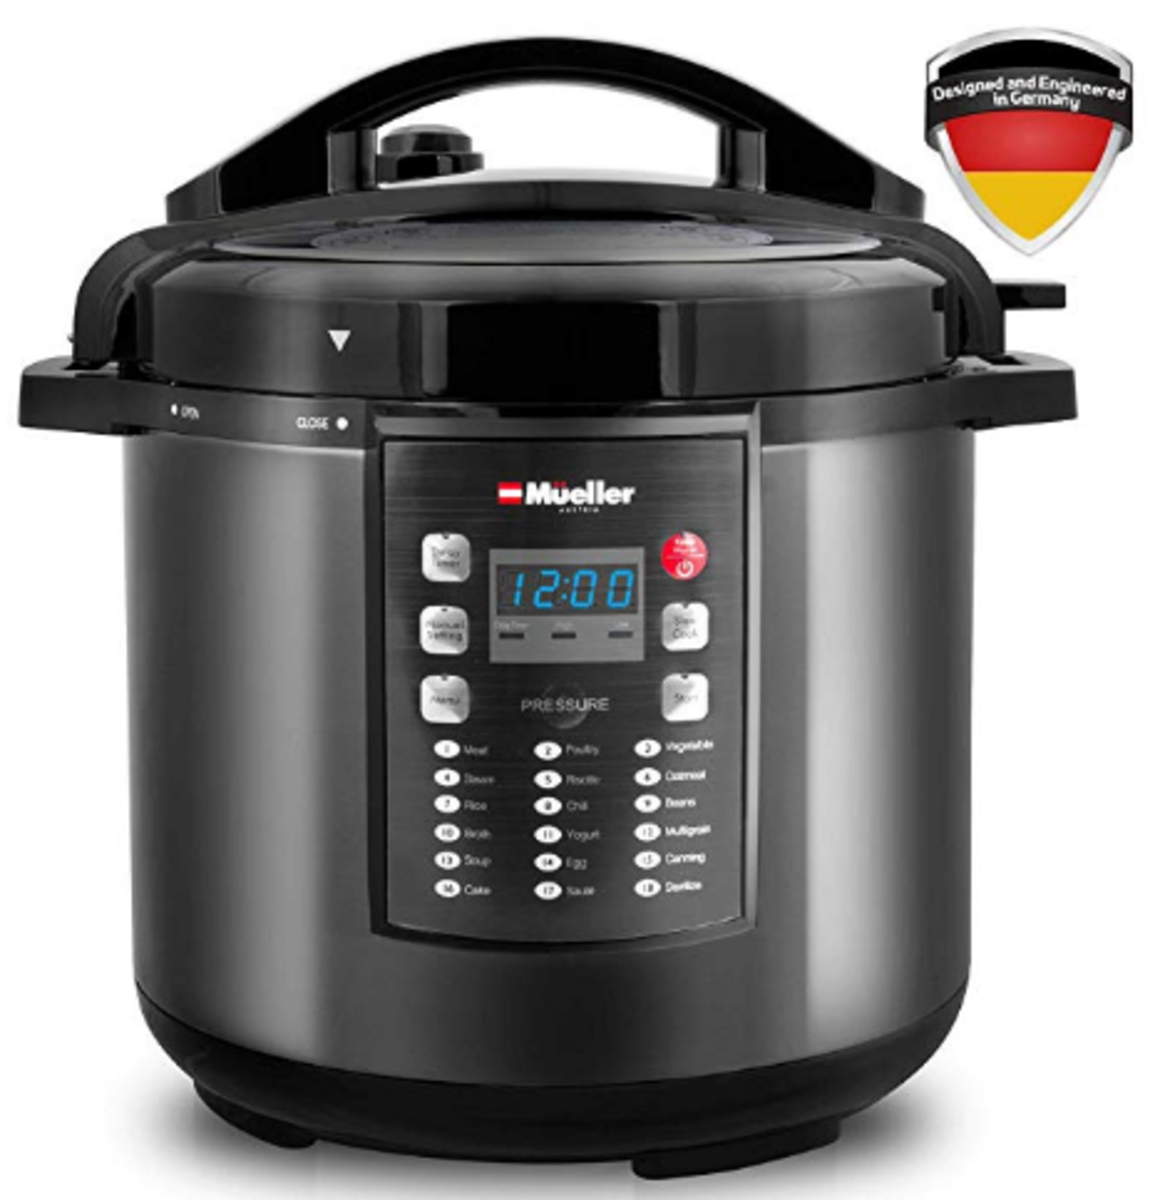 10 in 1 Pressure Cooker with Next Gen Electronic for Under $100